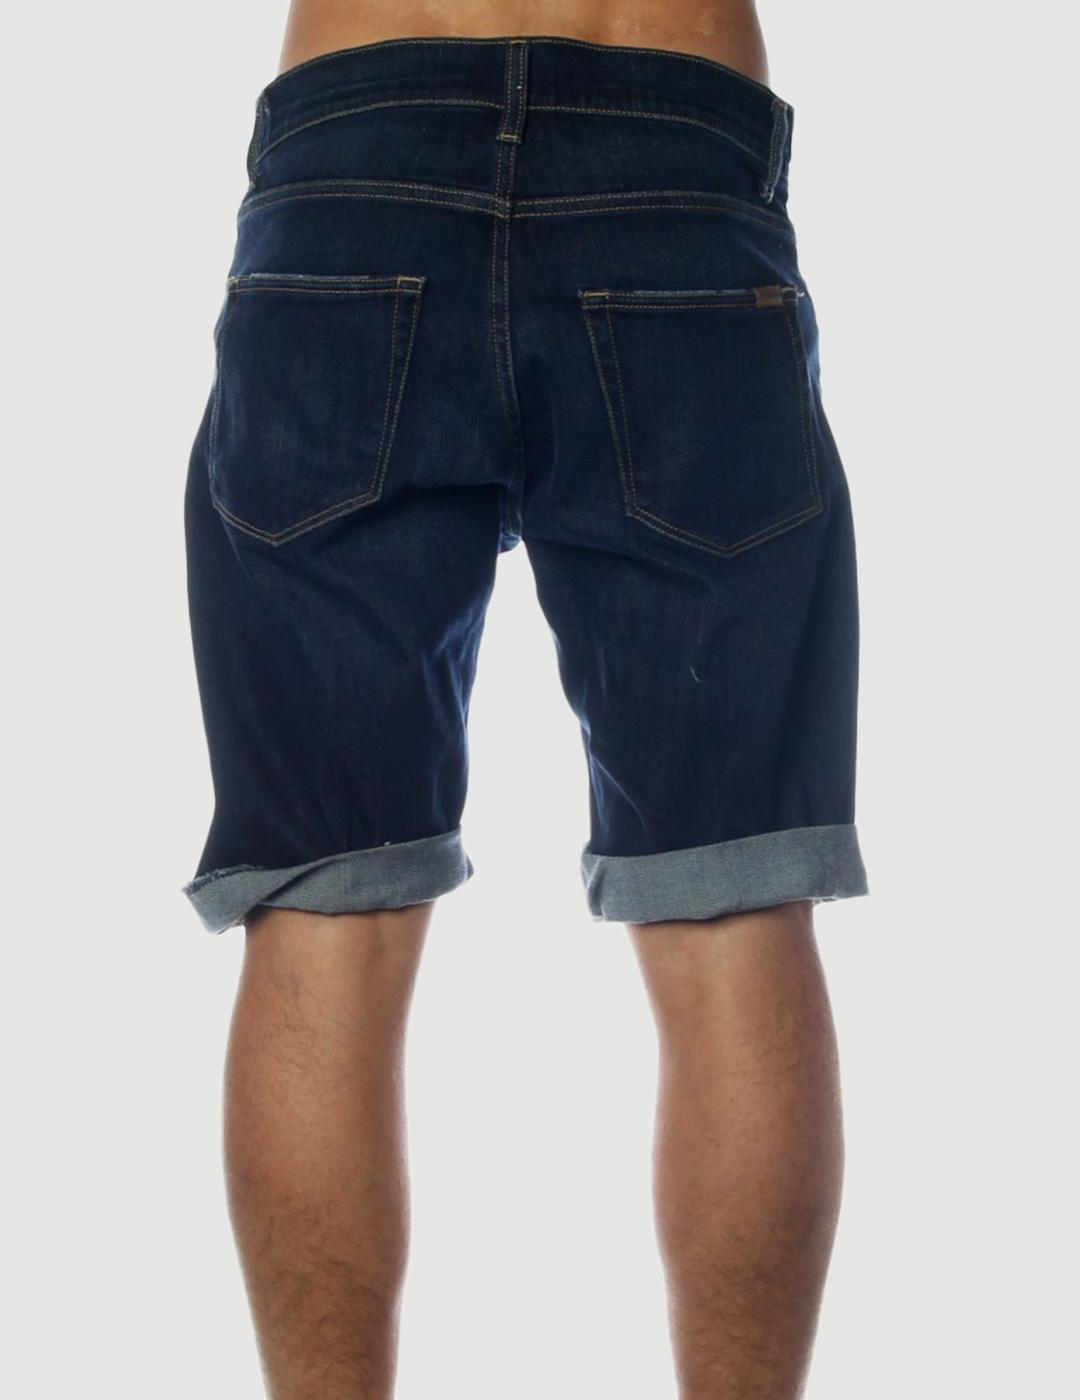 Bermuda Carhartt SWELL - Blue deep coasted washed